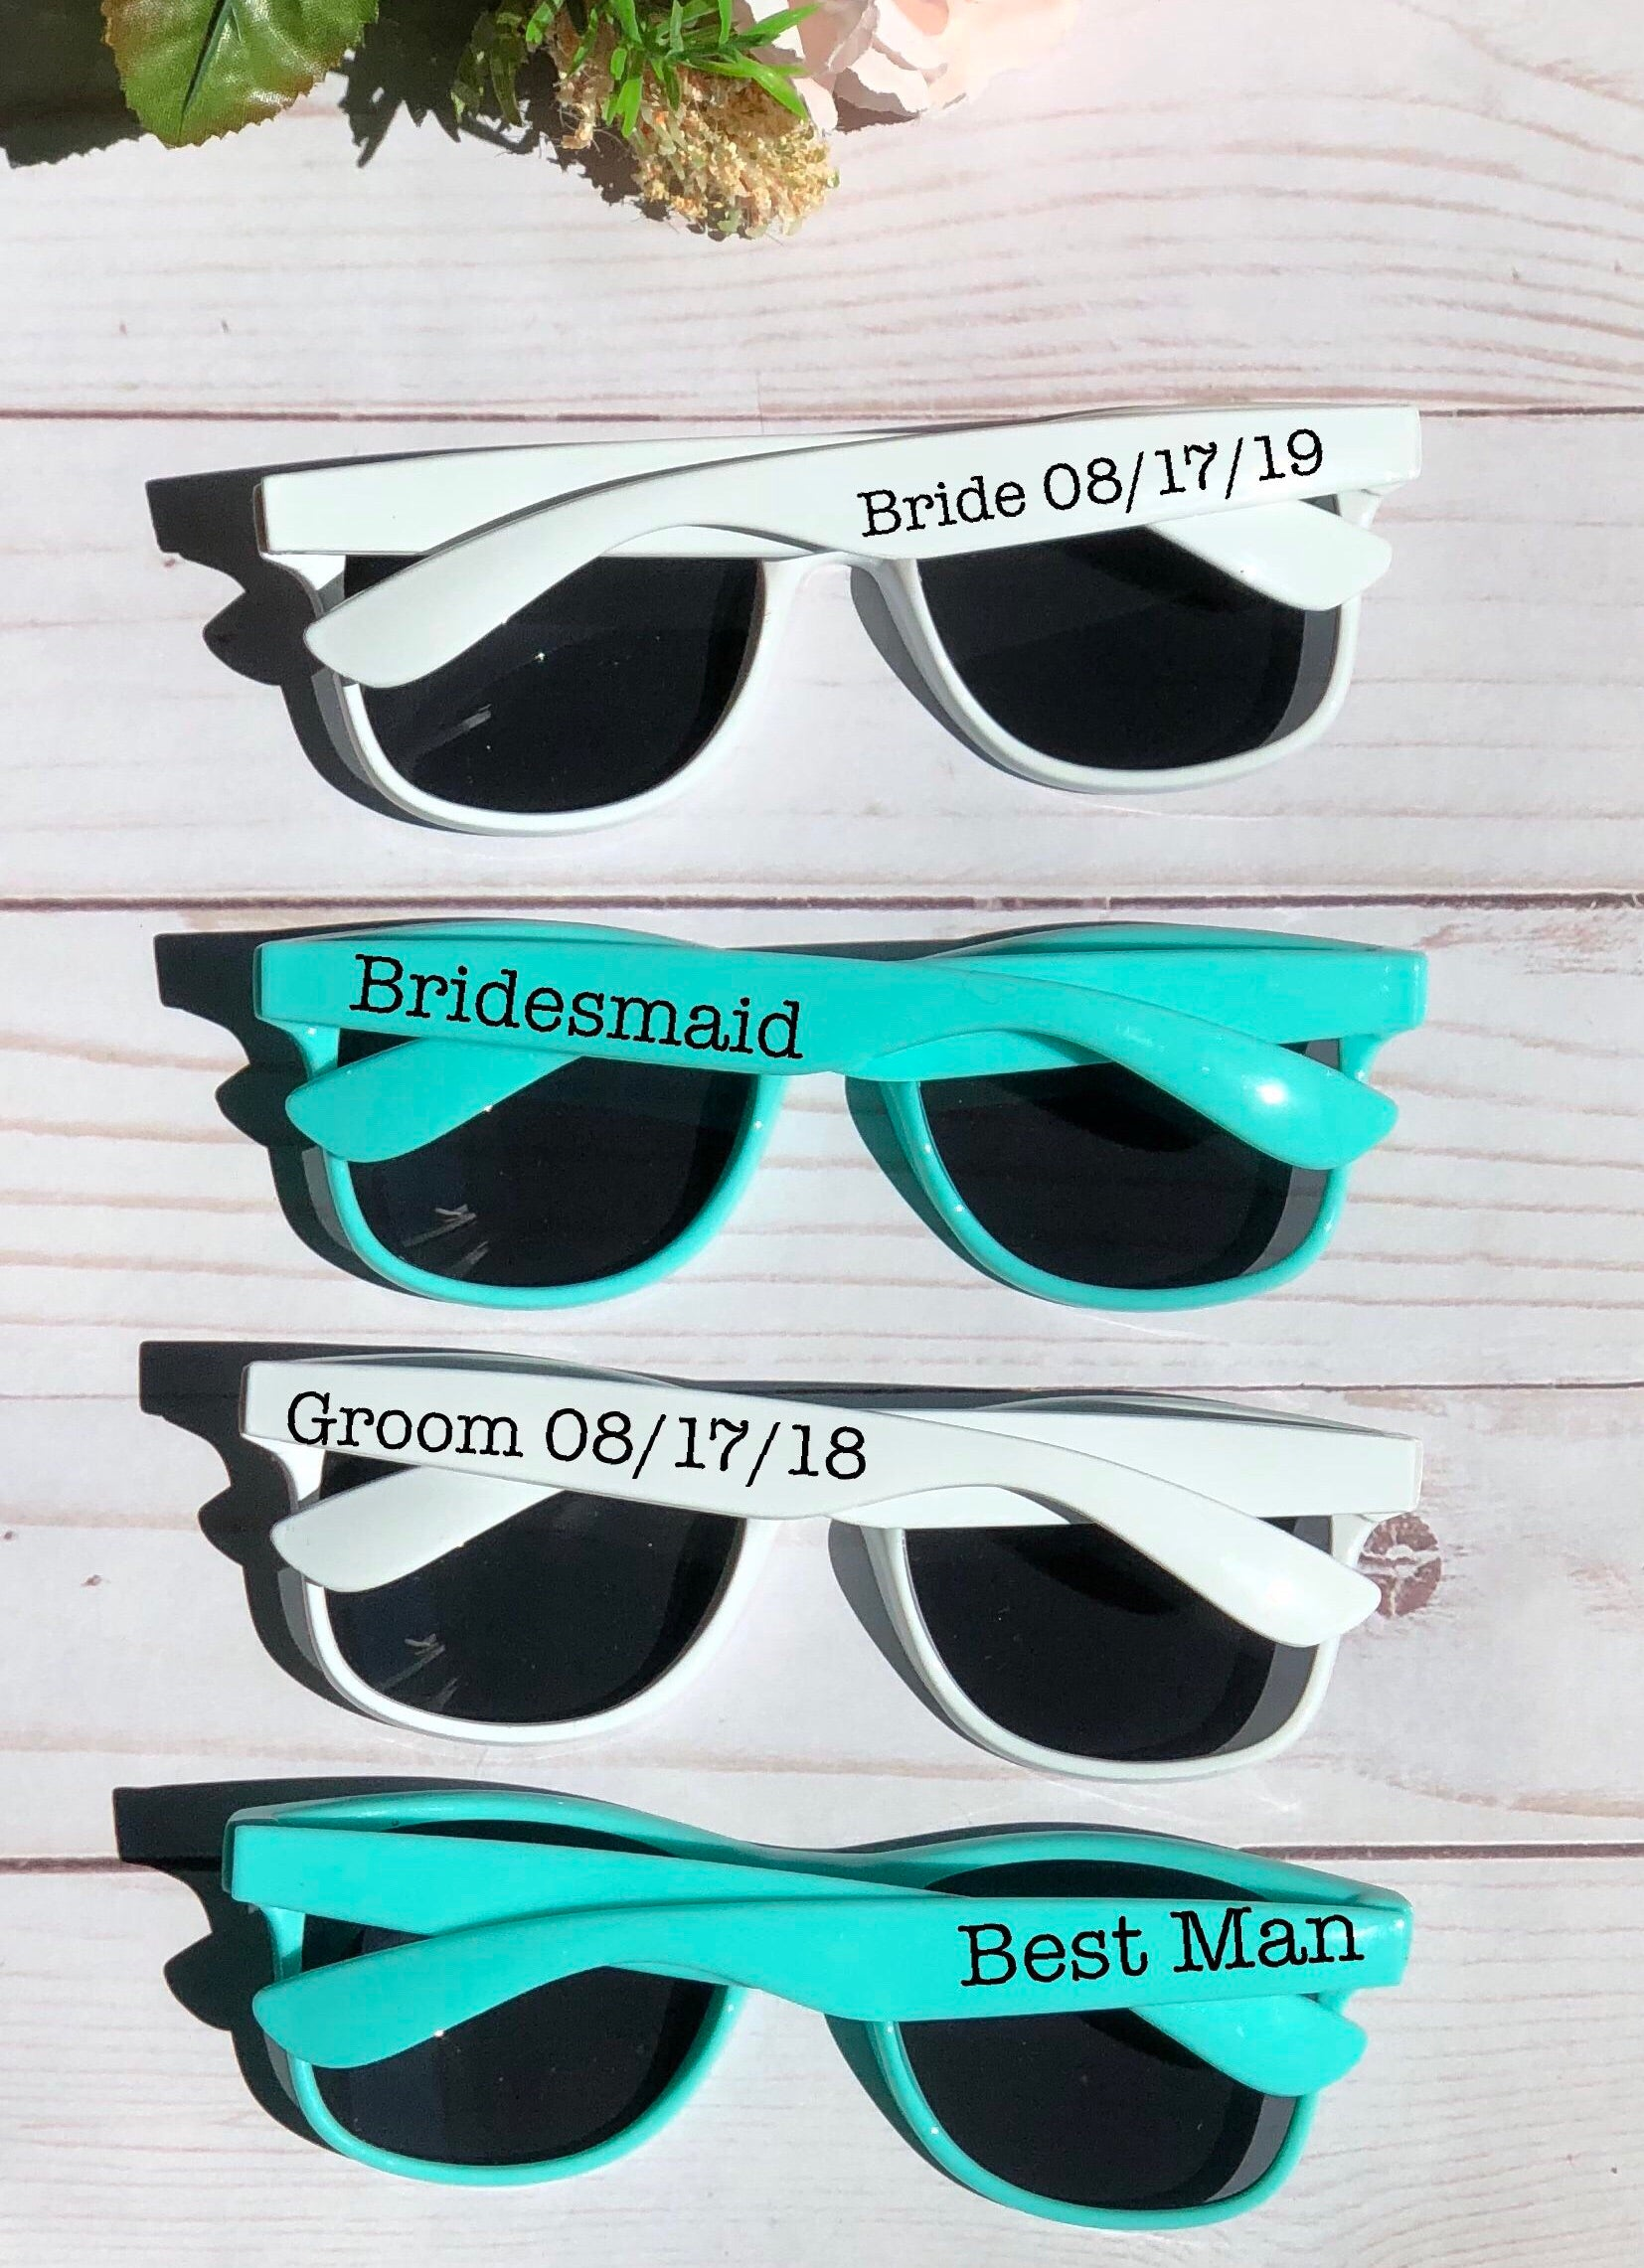 Wedding Party Sunglasses – Rocky Socks and Apparel